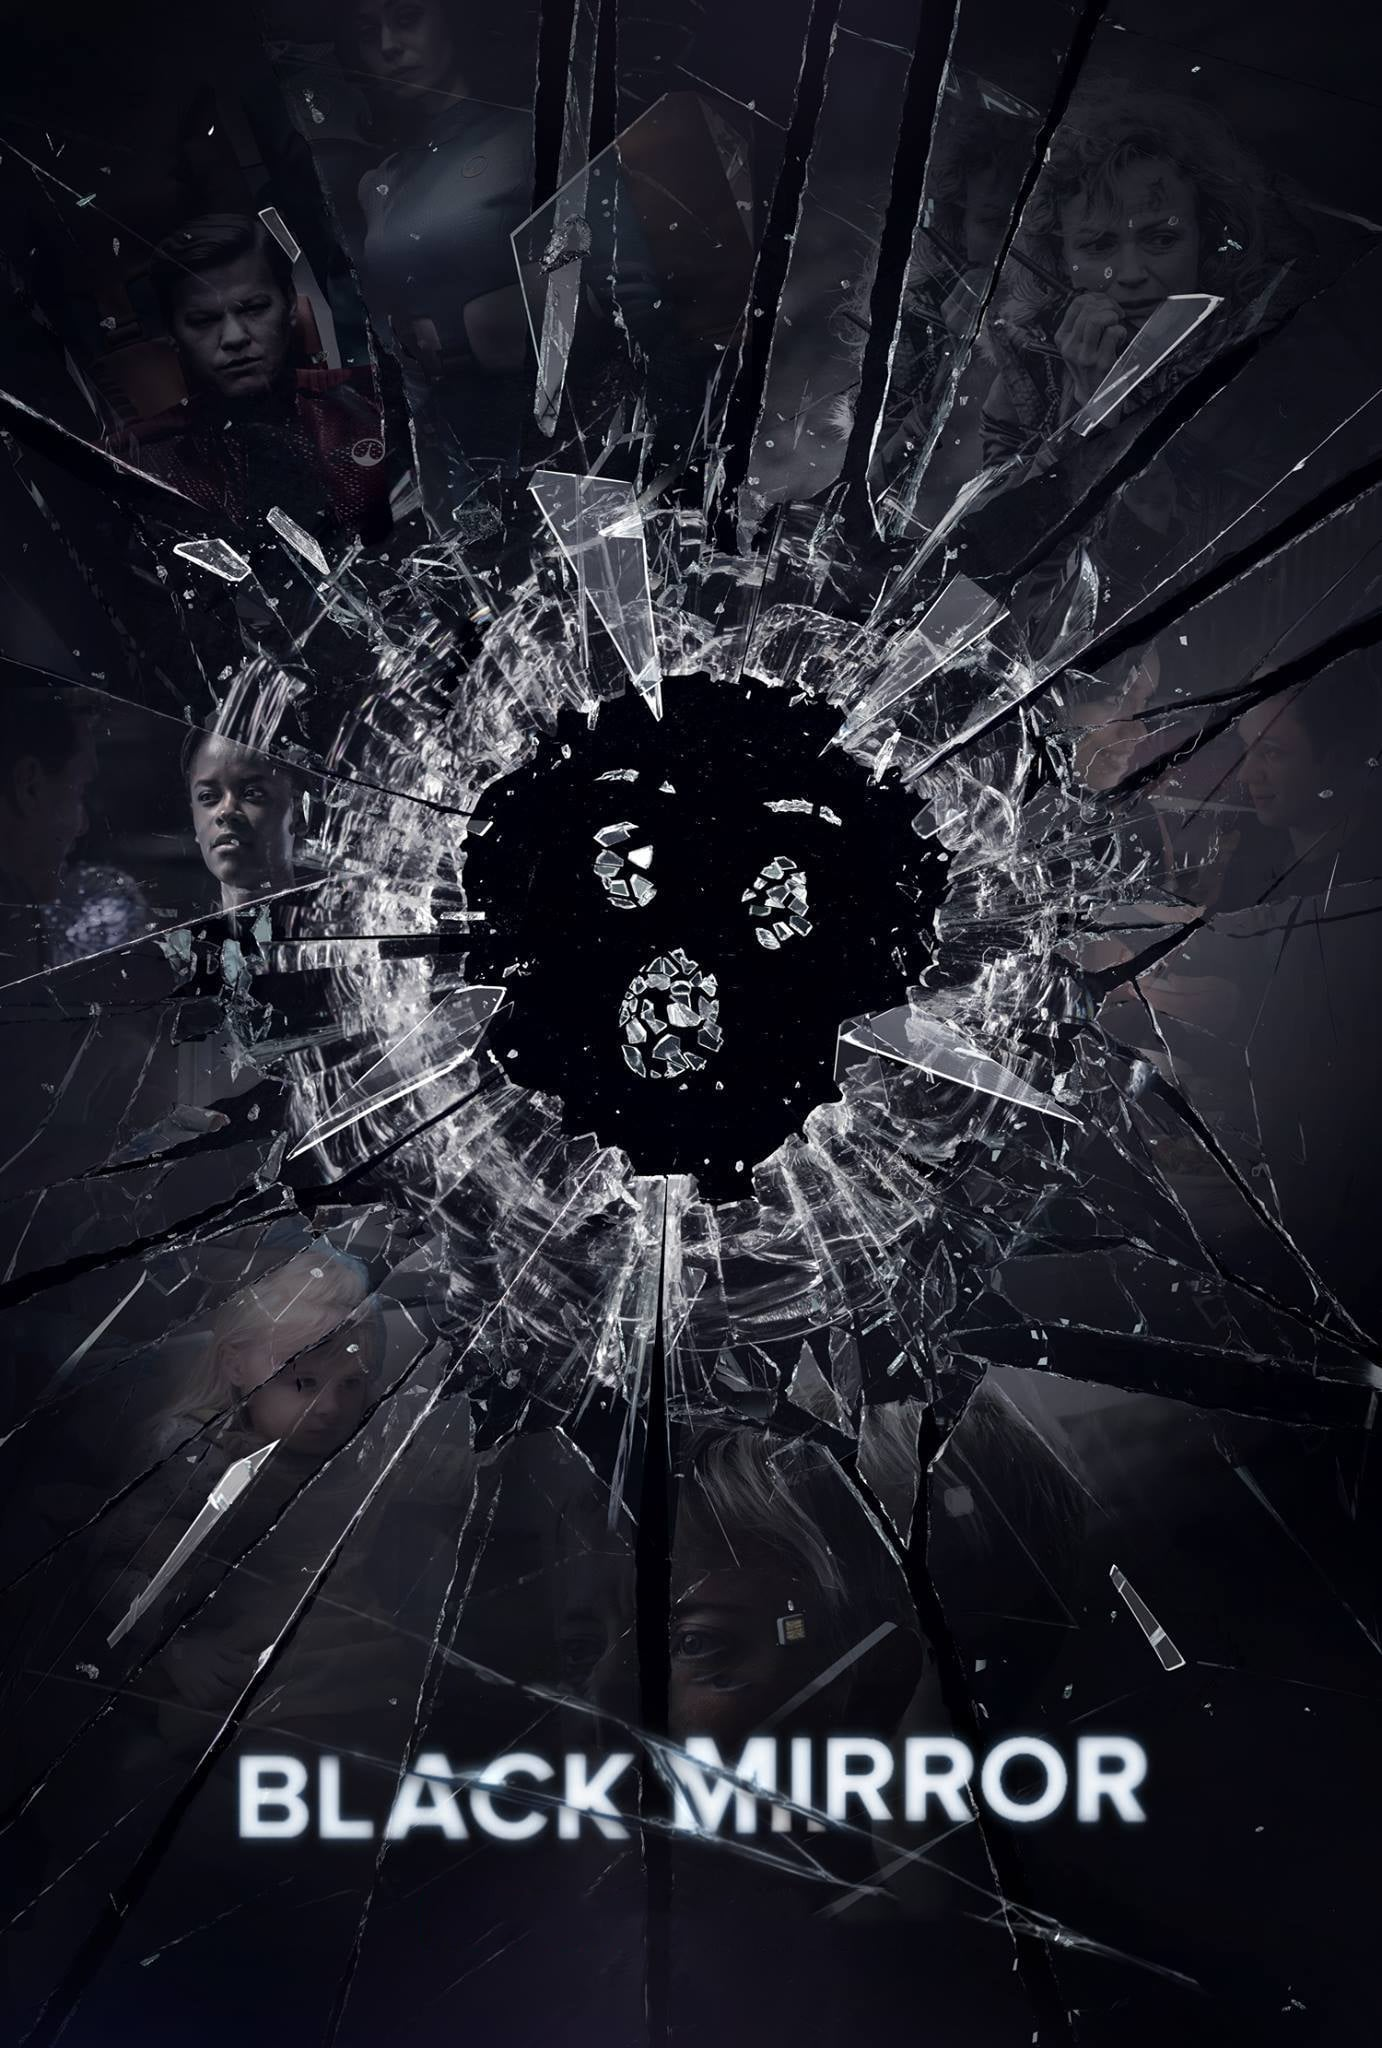 Black Mirror (2011-) Season 1-5 S01-S05 BluRay 1080p Mixed x264 [96 GB] | G-Drive